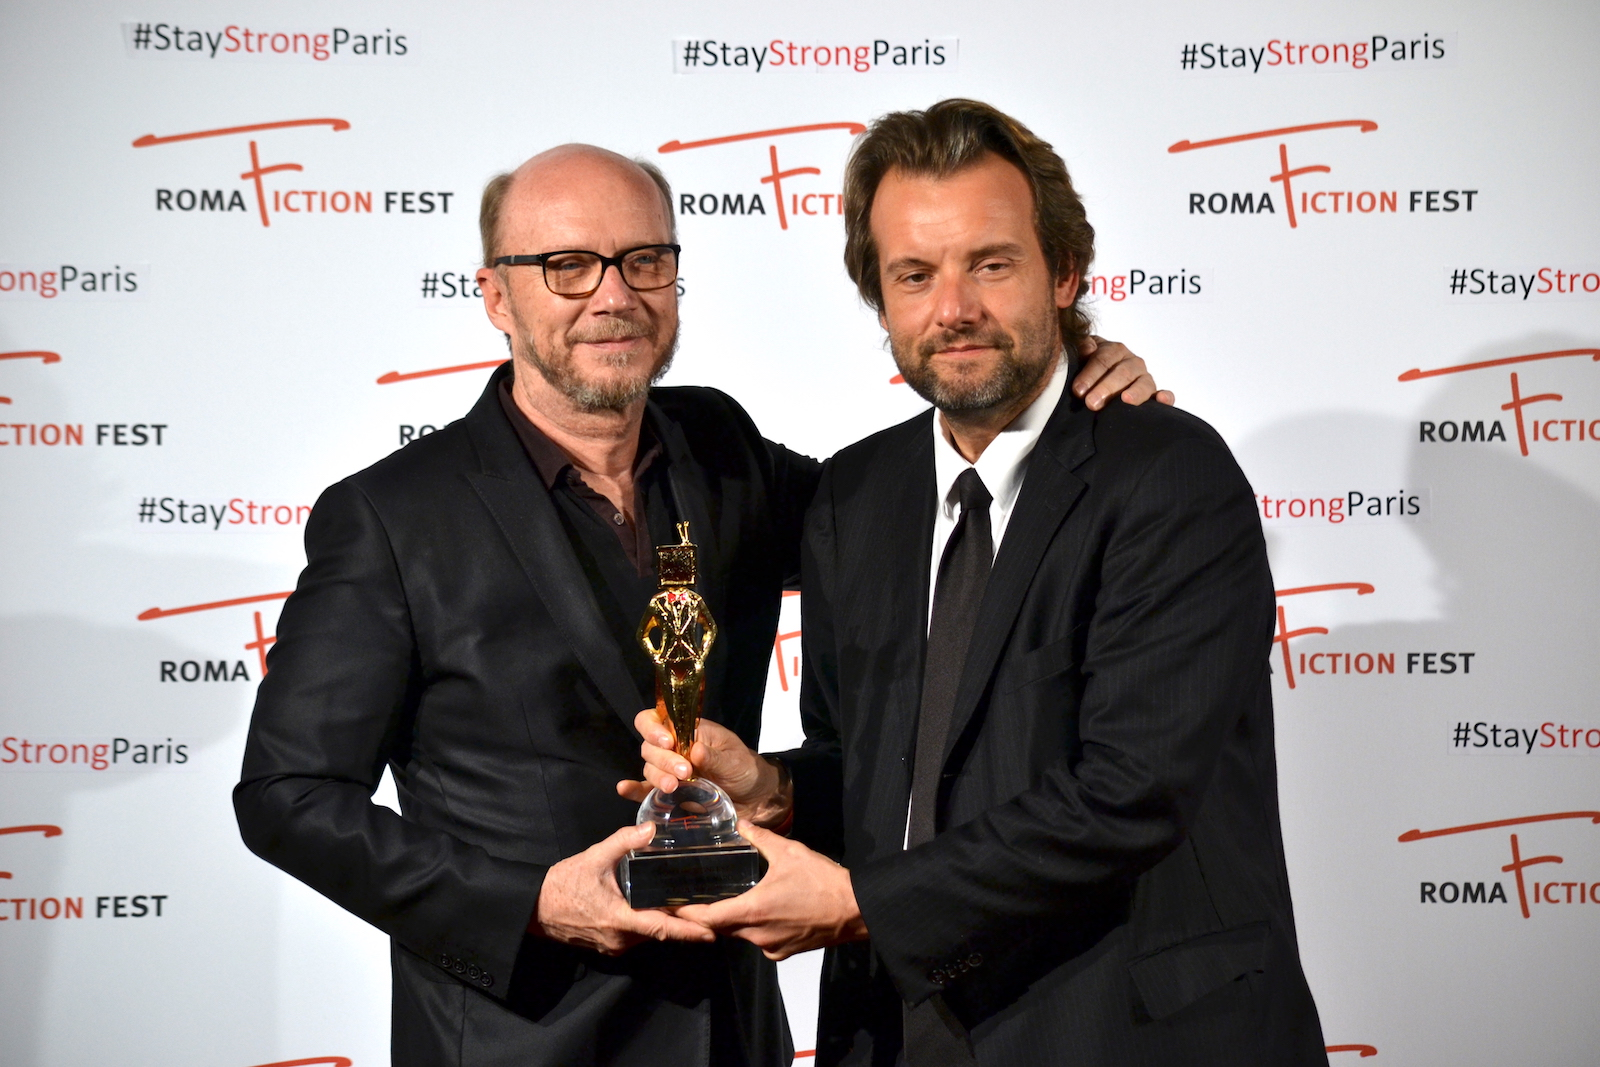 Roma Fiction Fest 2015: Paul Haggis mentre ritira l'excellence award